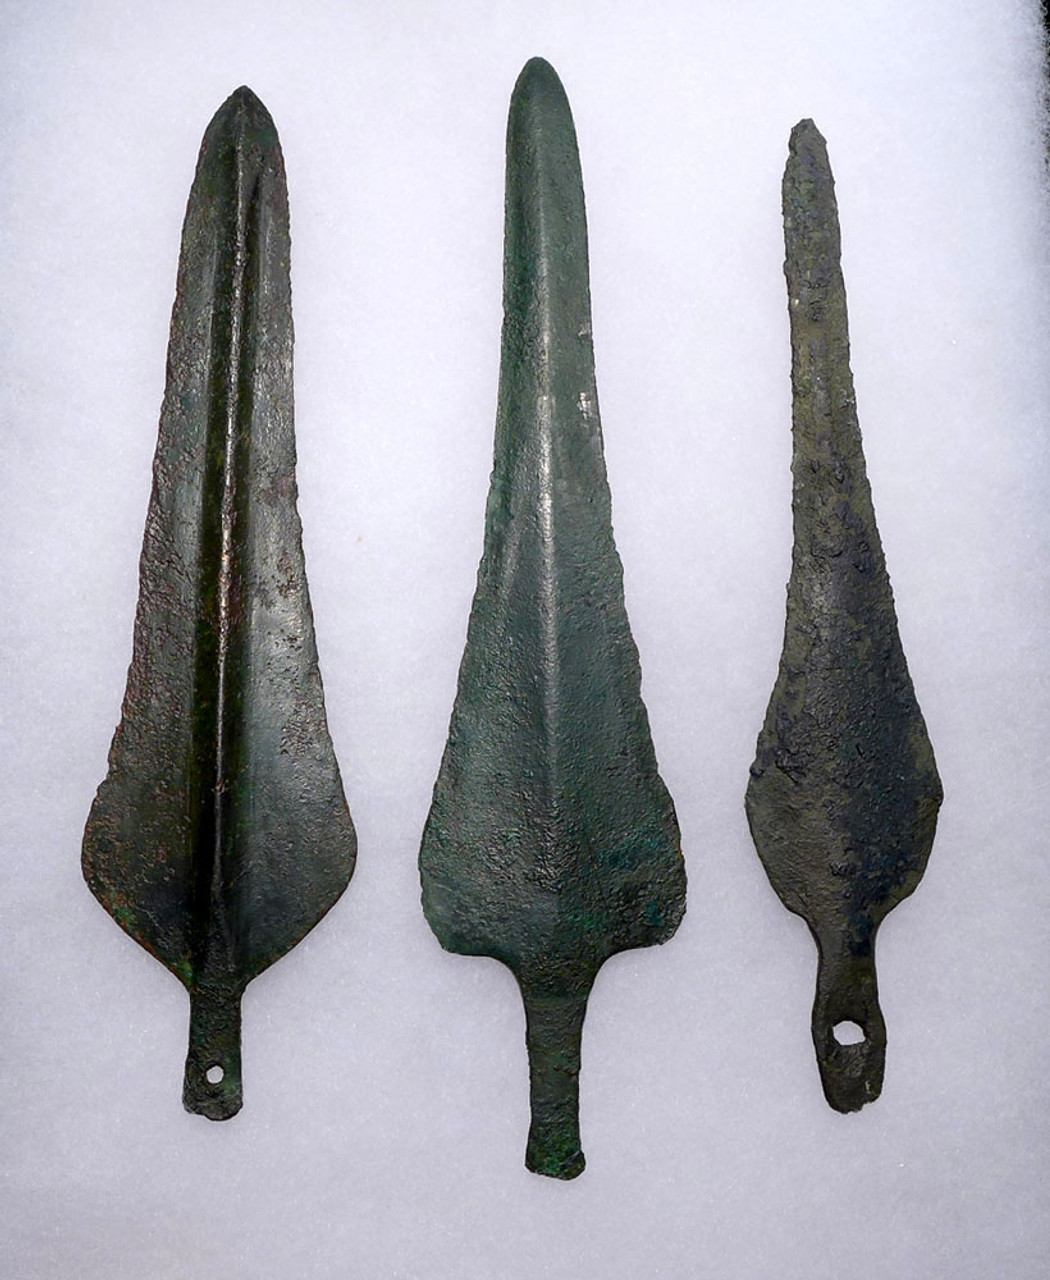 3 ANCIENT LURISTAN DAGGER KNIVES FROM THE NEAR EASTERN BRONZE AGE *LUR110